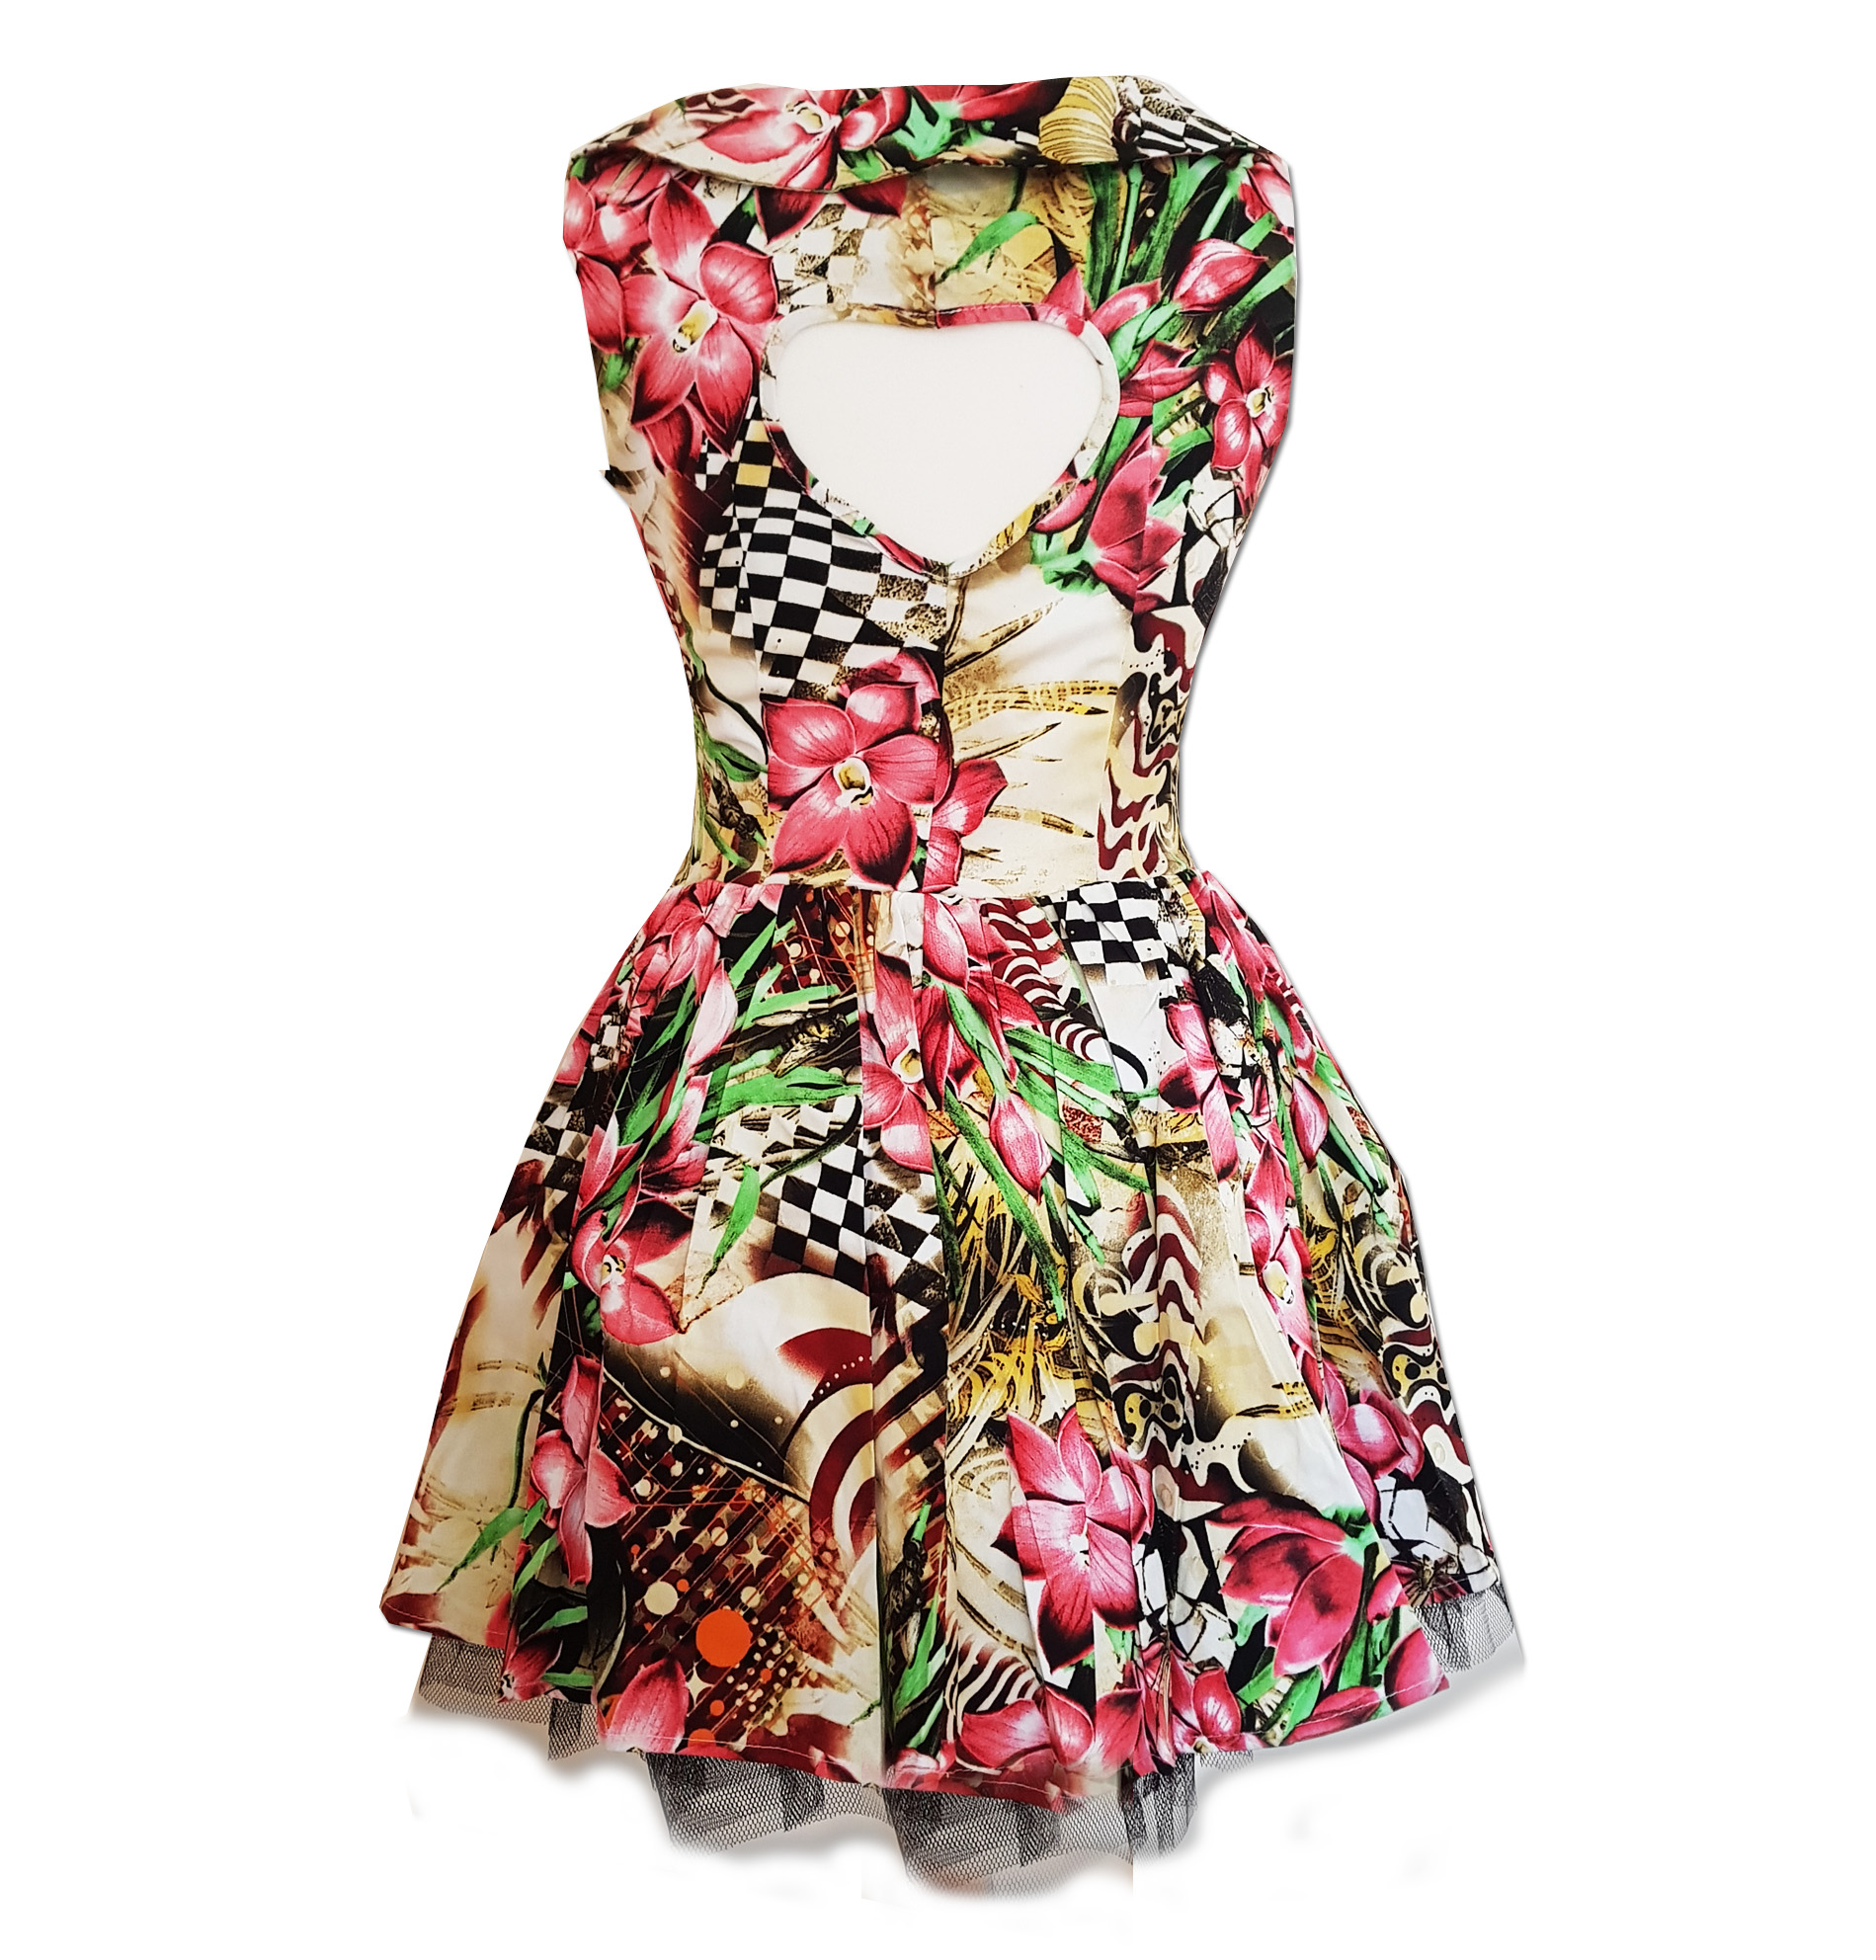 H-amp-R-Hearts-amp-Roses-London-Pink-Mini-Dress-039-Lily-Checkerboard-039-Flowers-All-Sizes thumbnail 17